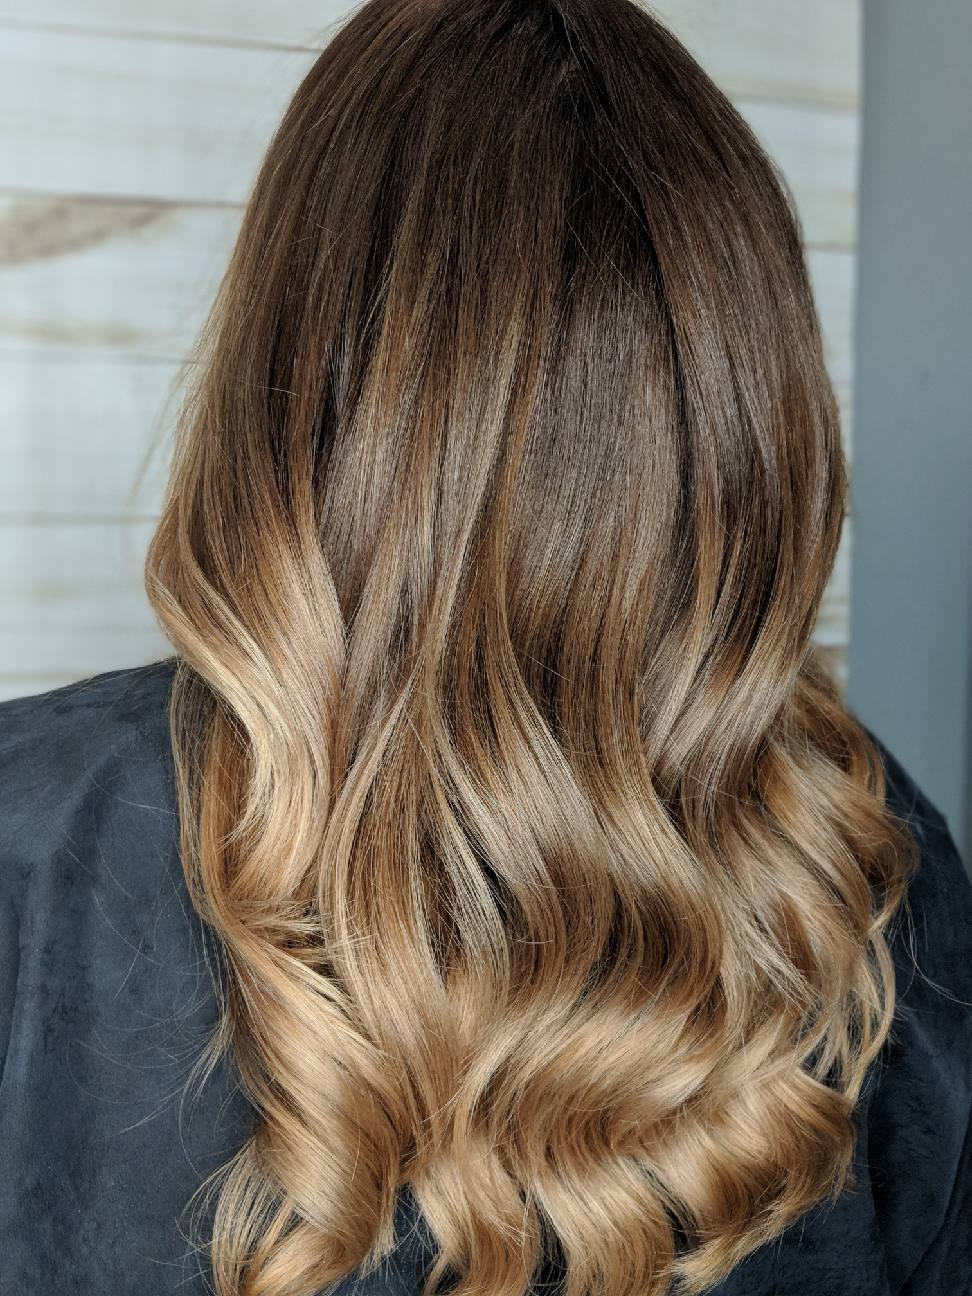 Salon Vivid Correcting Bad Balayage Or Ombre